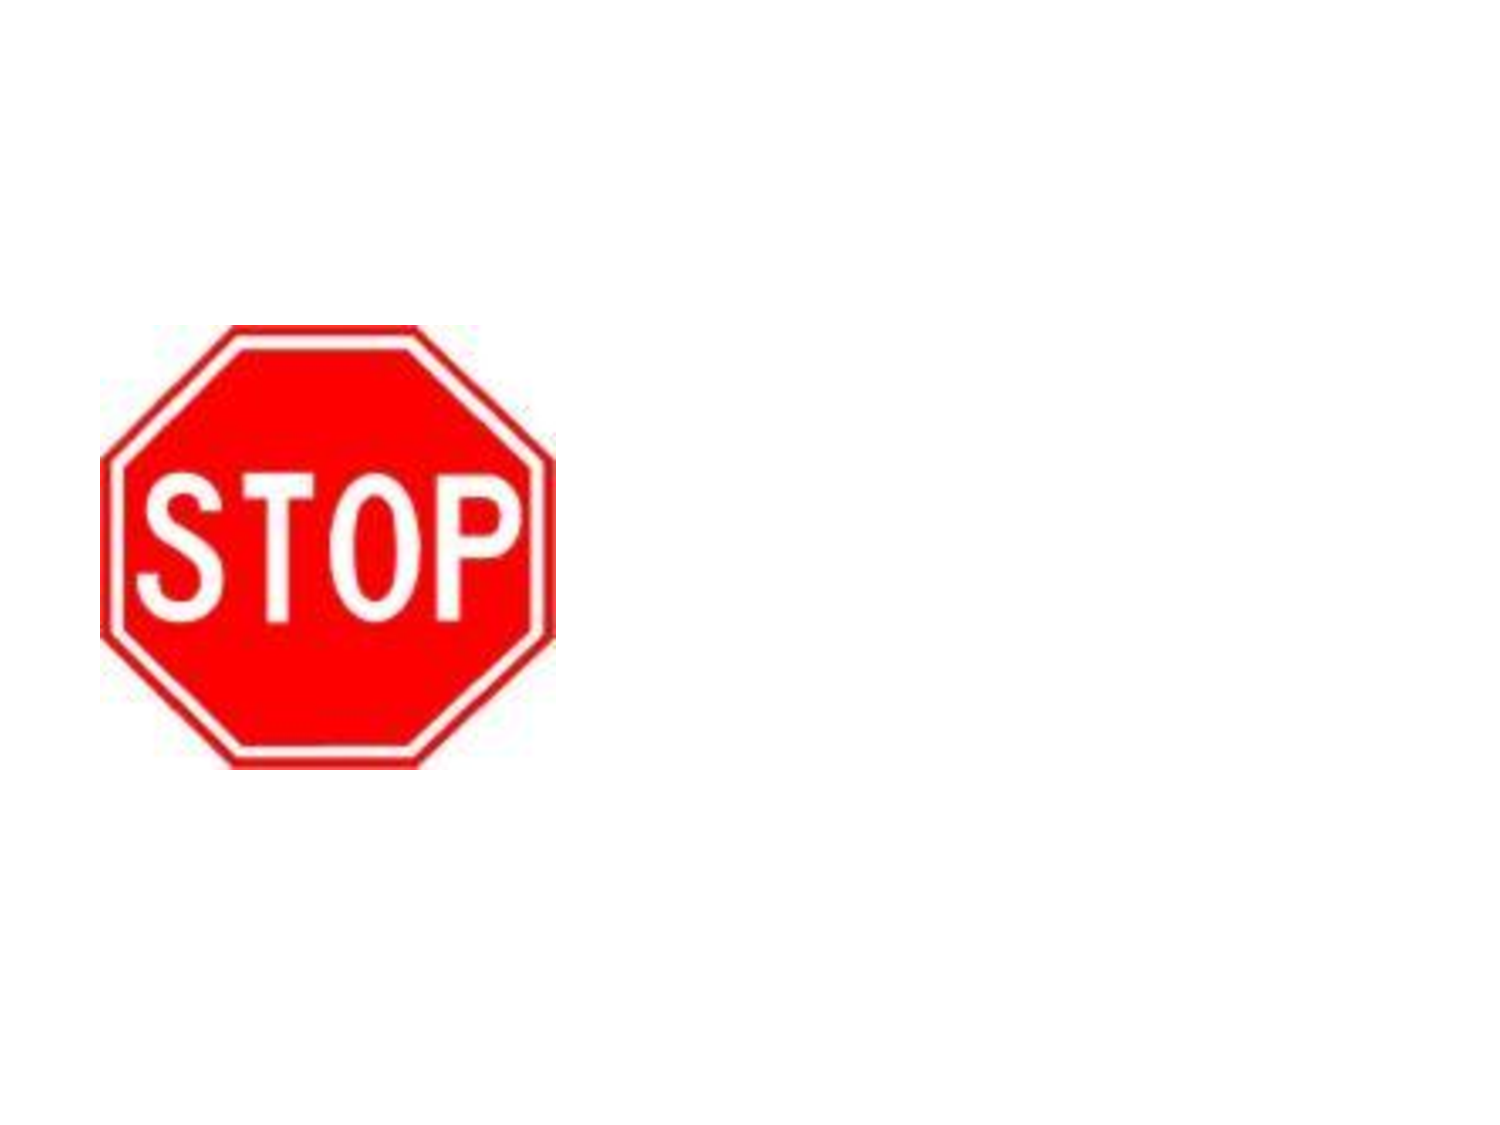 60 Stop sign clipart printable for free download on Premium.